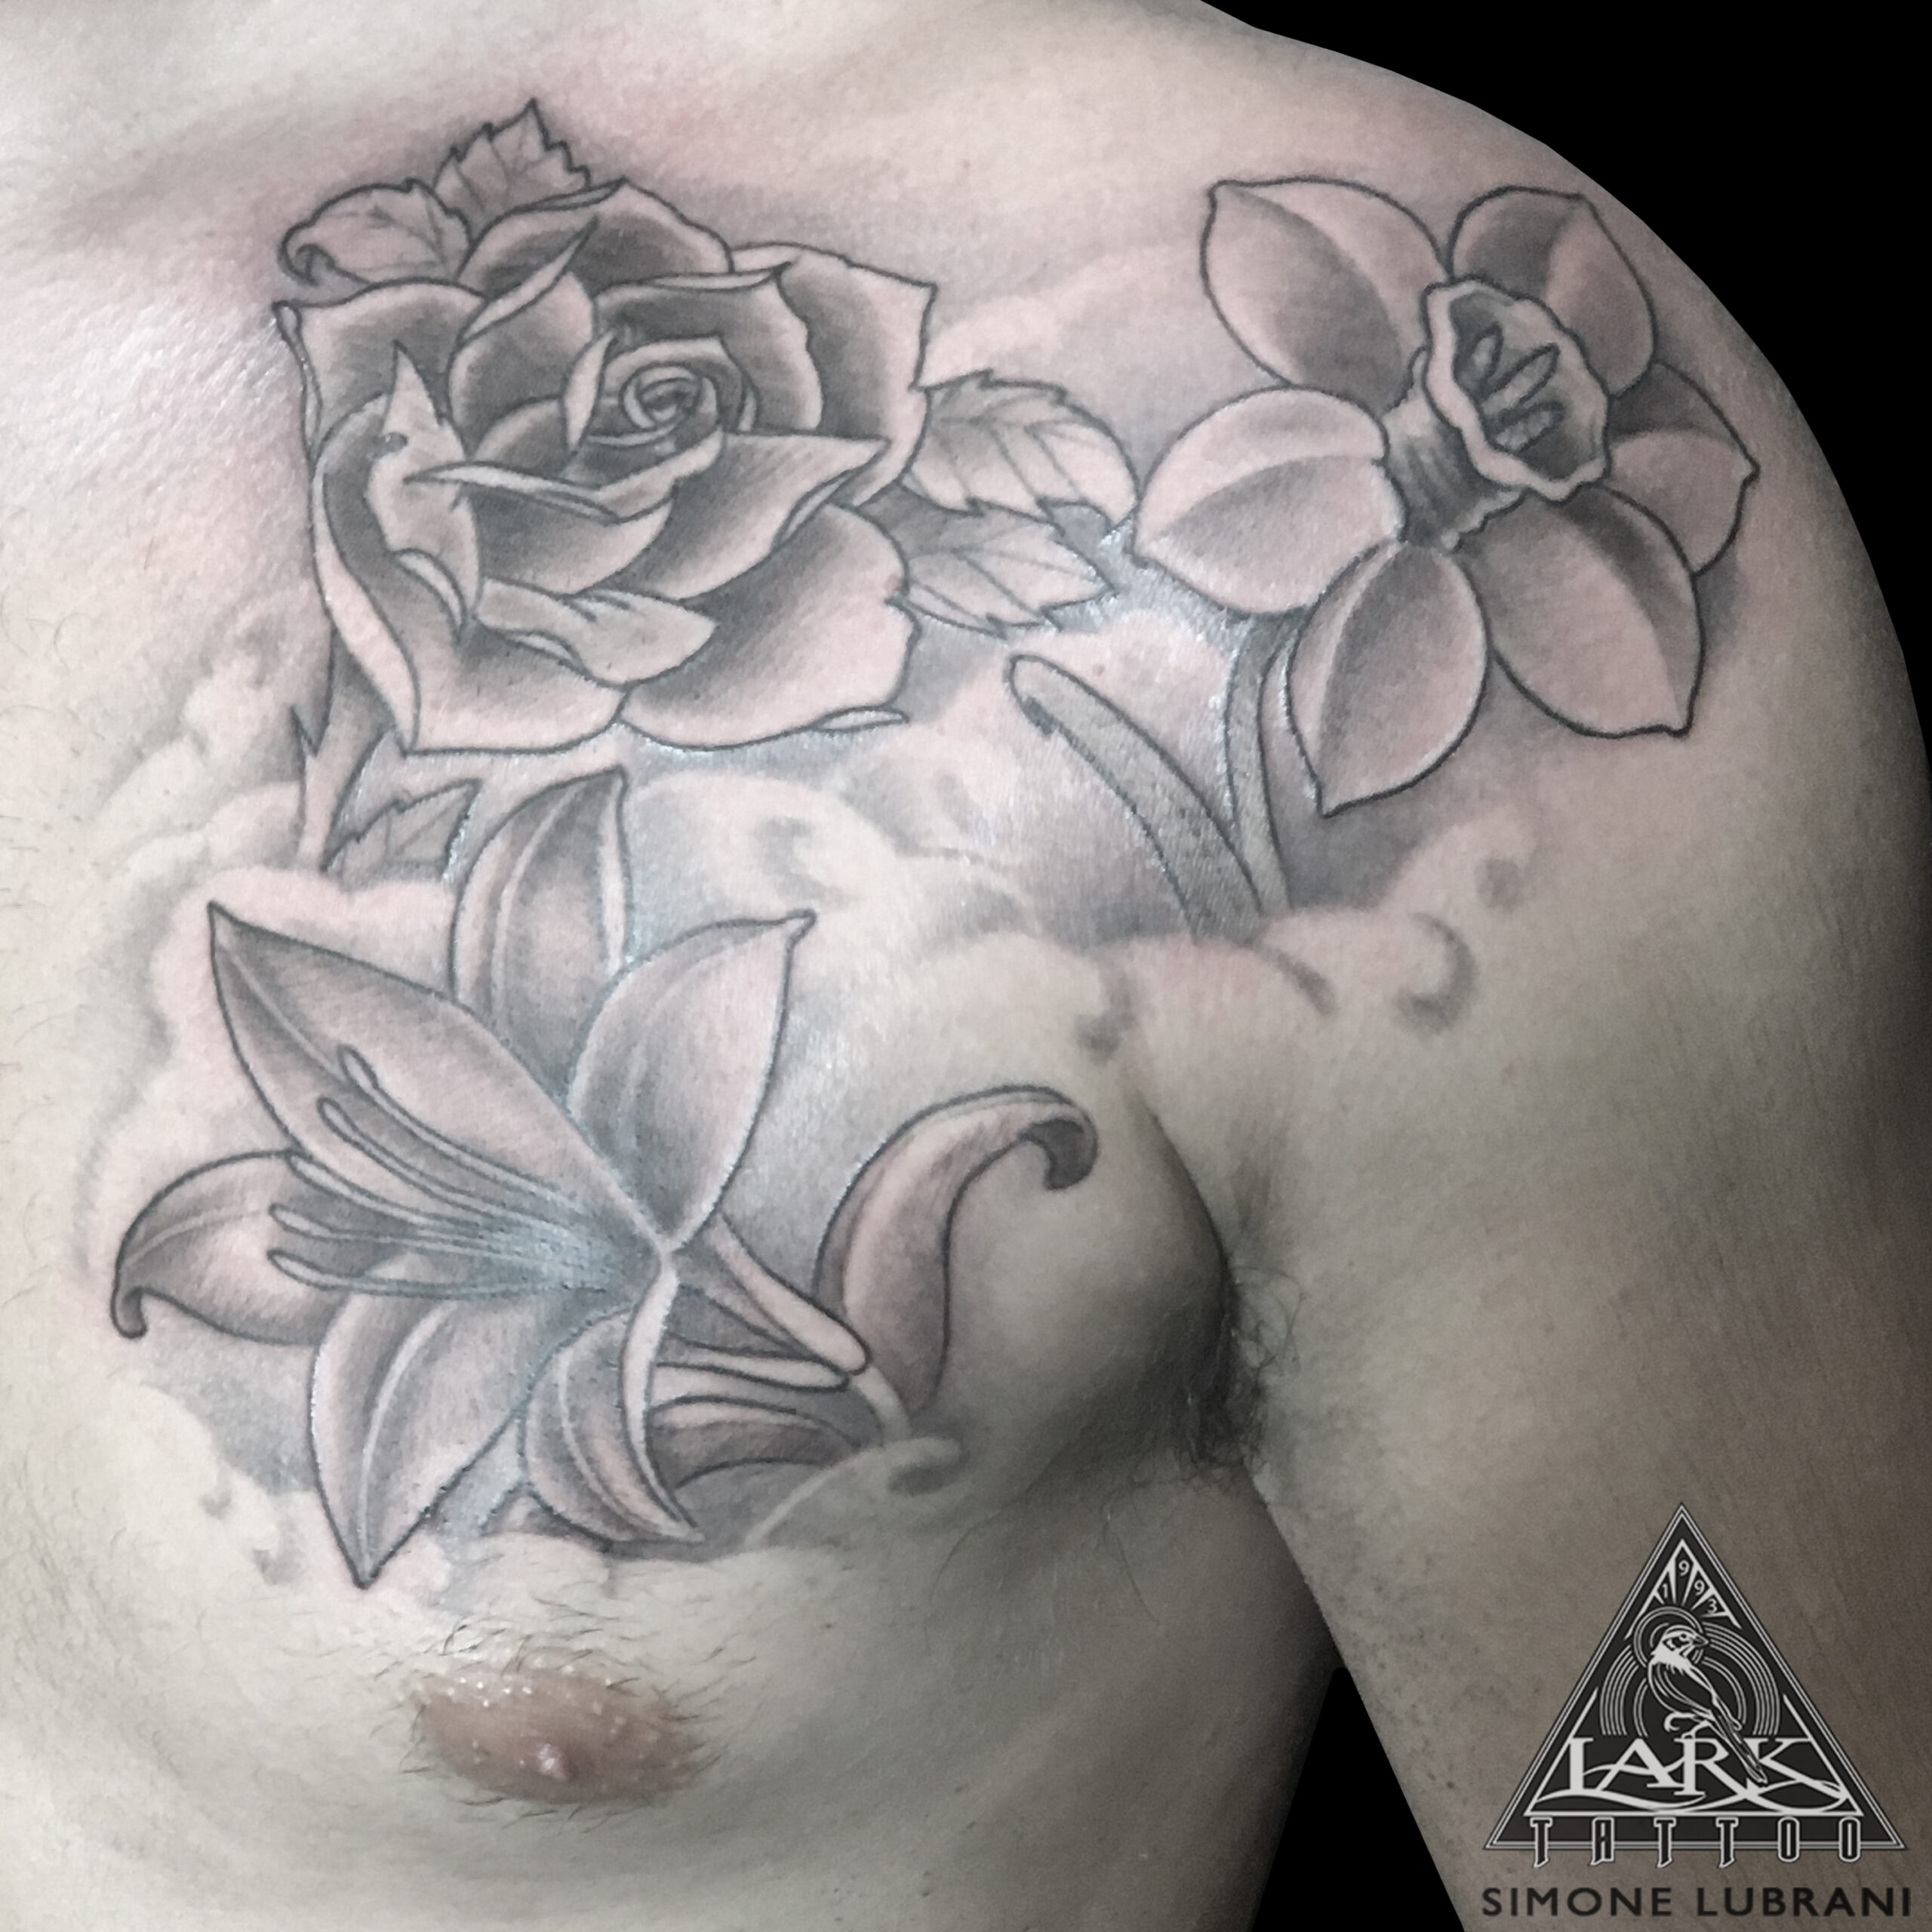 LarkTattoo, SimoneLubrani, SimoneLubraniLarkTattoo, Tattoo, Tattoos, TattooArtist, Tattoist, Tattooer, LongIslandTattooArtist, LongIslandTattooer, LongIslandTattoo, BlackAndGrey, BlackAndGreyTattoo, BlackAndGray, BlackAndGrayTattoo, Flower, FlowerTattoo, Flowers, FlowersTattoo, Lily, LilyTattoo, Rose, RoseTattoo, Daffodil, DaffodilTattoo, illustration, illustrationTattoo, Blackwork, BlackworkTattoo, Blackworkers, BNG, BNGTattoo, BNGInkSociety, TattooOfTheDay, Tat, Tats, Tatts, Tatted, Inked, Ink, TattooInk, AmazingInk, AmazingTattoo, BodyArt, LarkTattooWestbury, Westbury, LongIsland, NY, NewYork, USA, Art, Tattedup, InkedUp, LarkTattoos